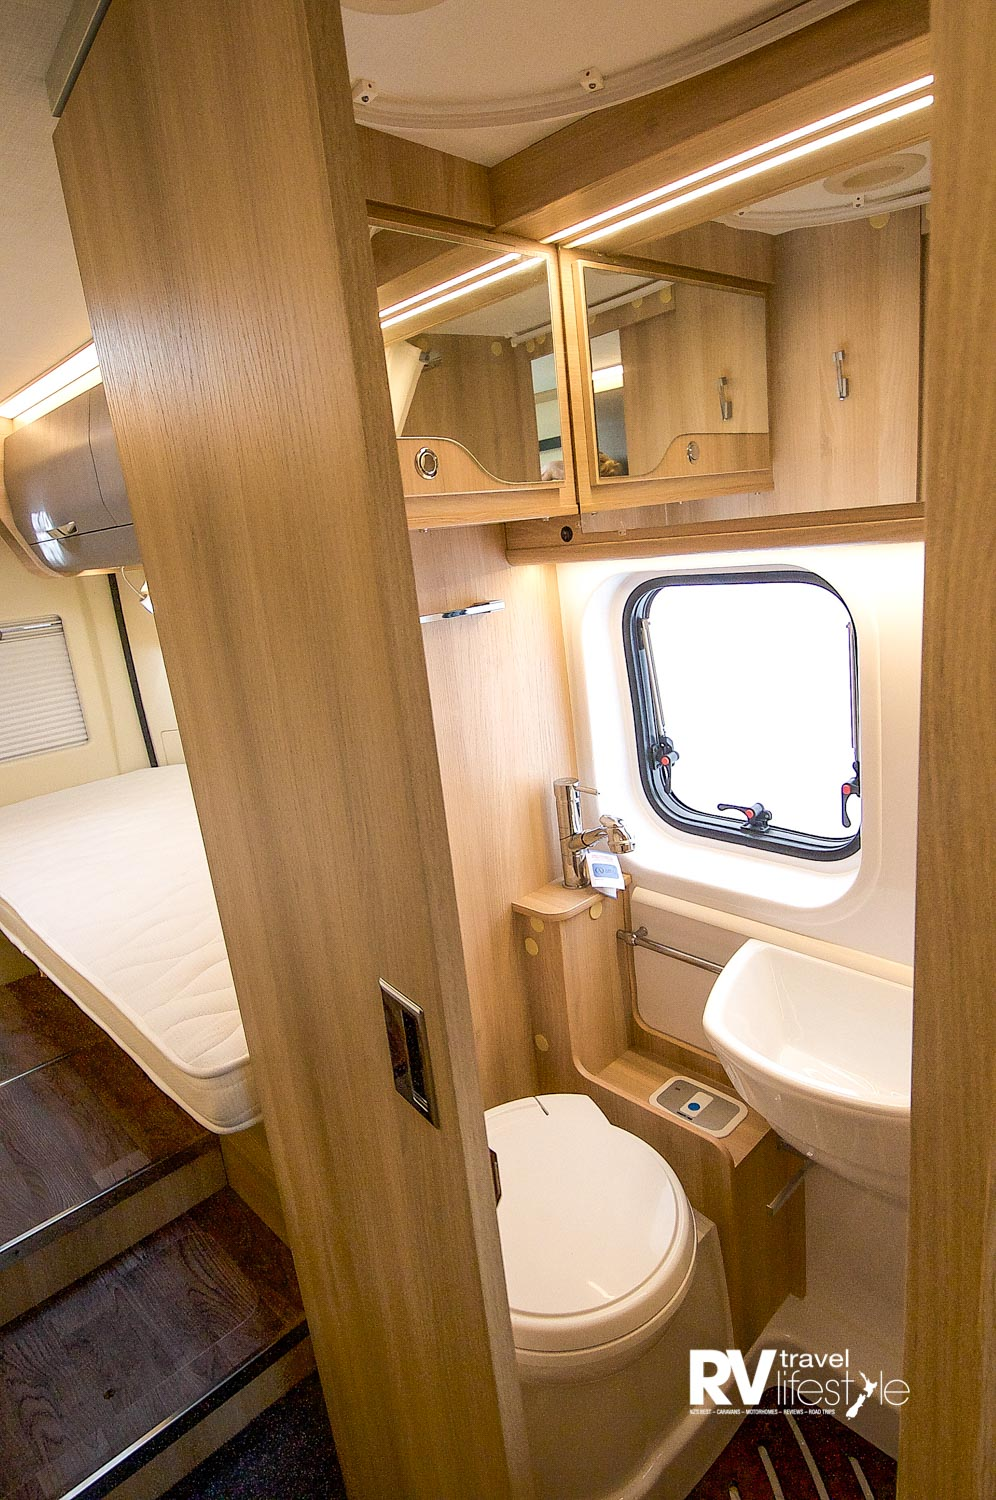 I like the sliding door entry, electric flush toilet, shower box with small vanity sink, window and overhead storage – mirrors make the area seem larger